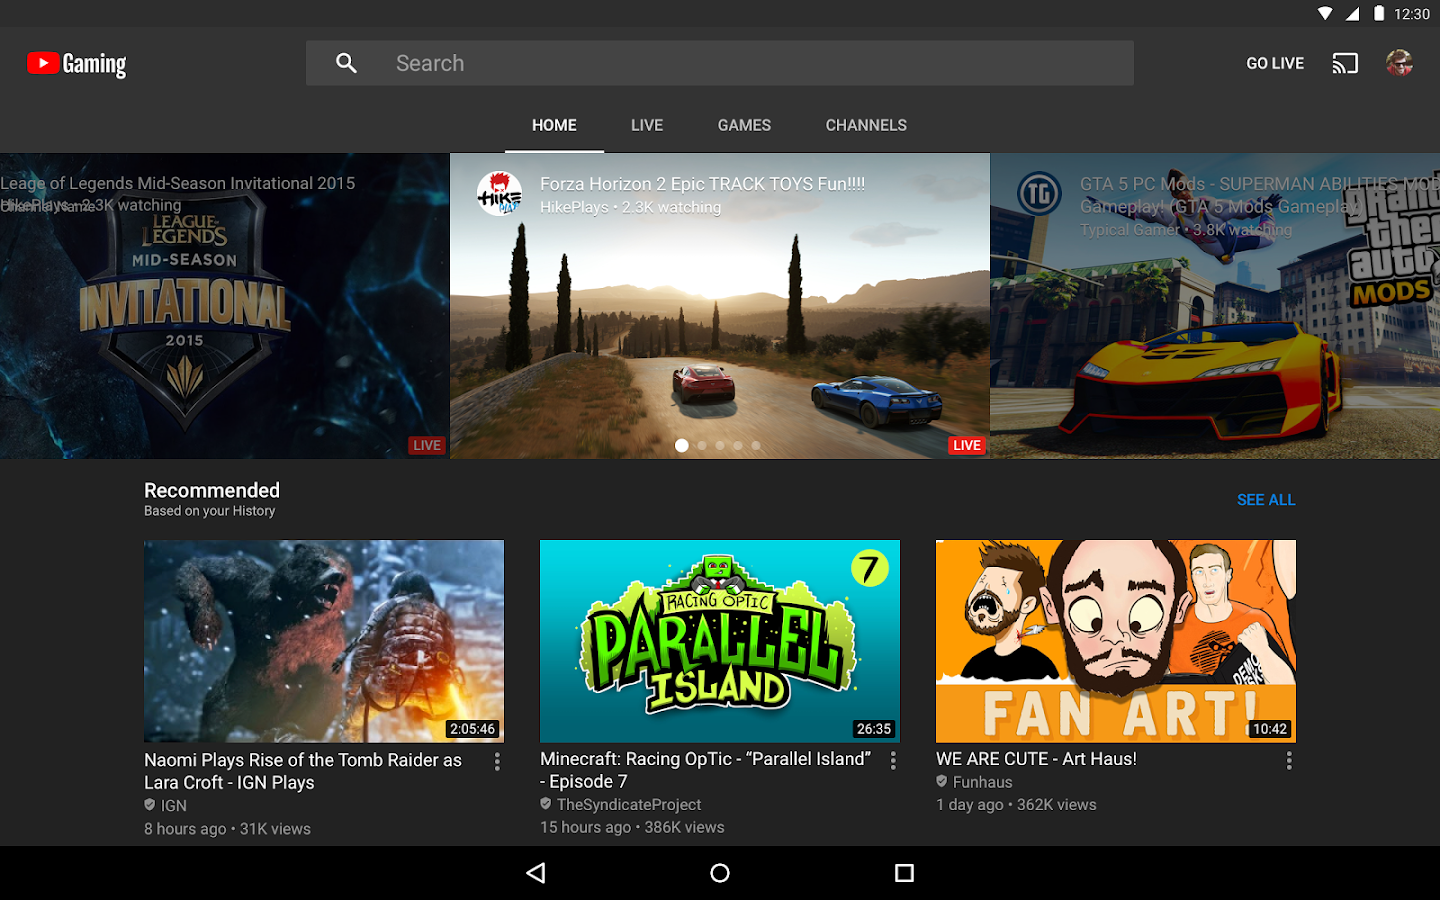 YouTube Gaming Android Apps On Google Play - 42 epic moments captured just at the right time